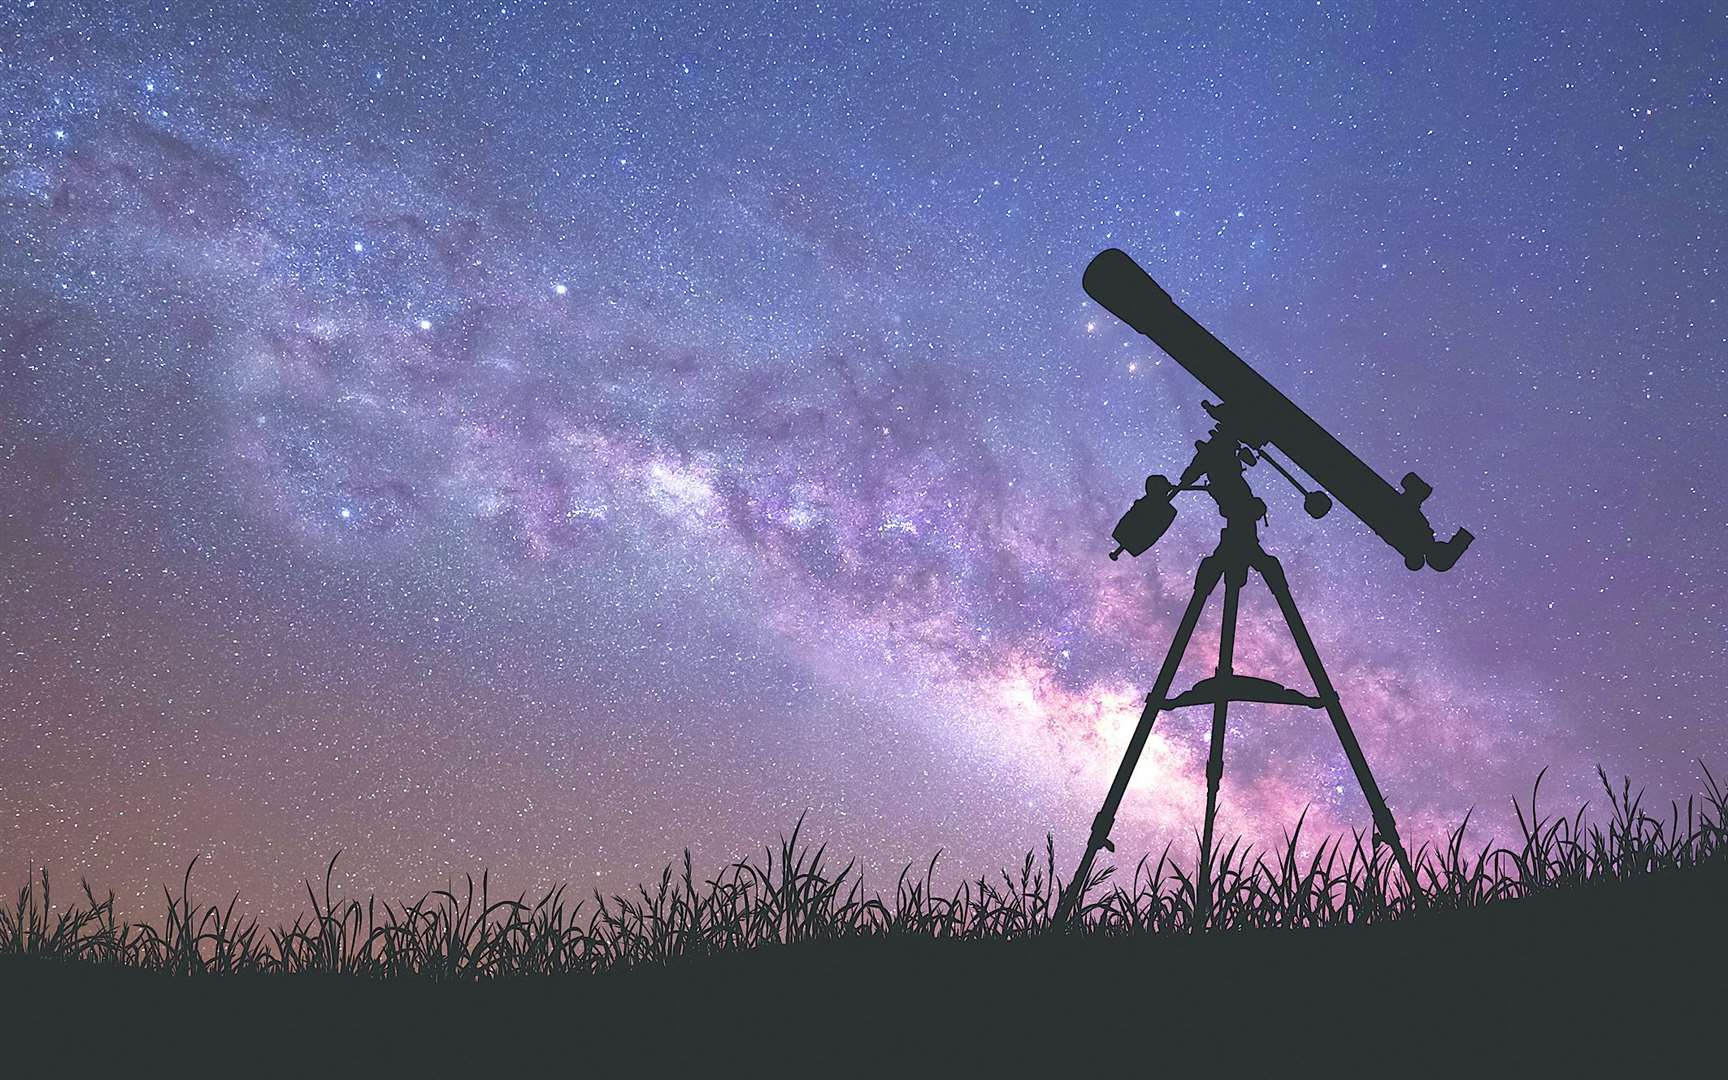 While telescopes and binoculars can help, if conditions are right you will be able to see the shower without them